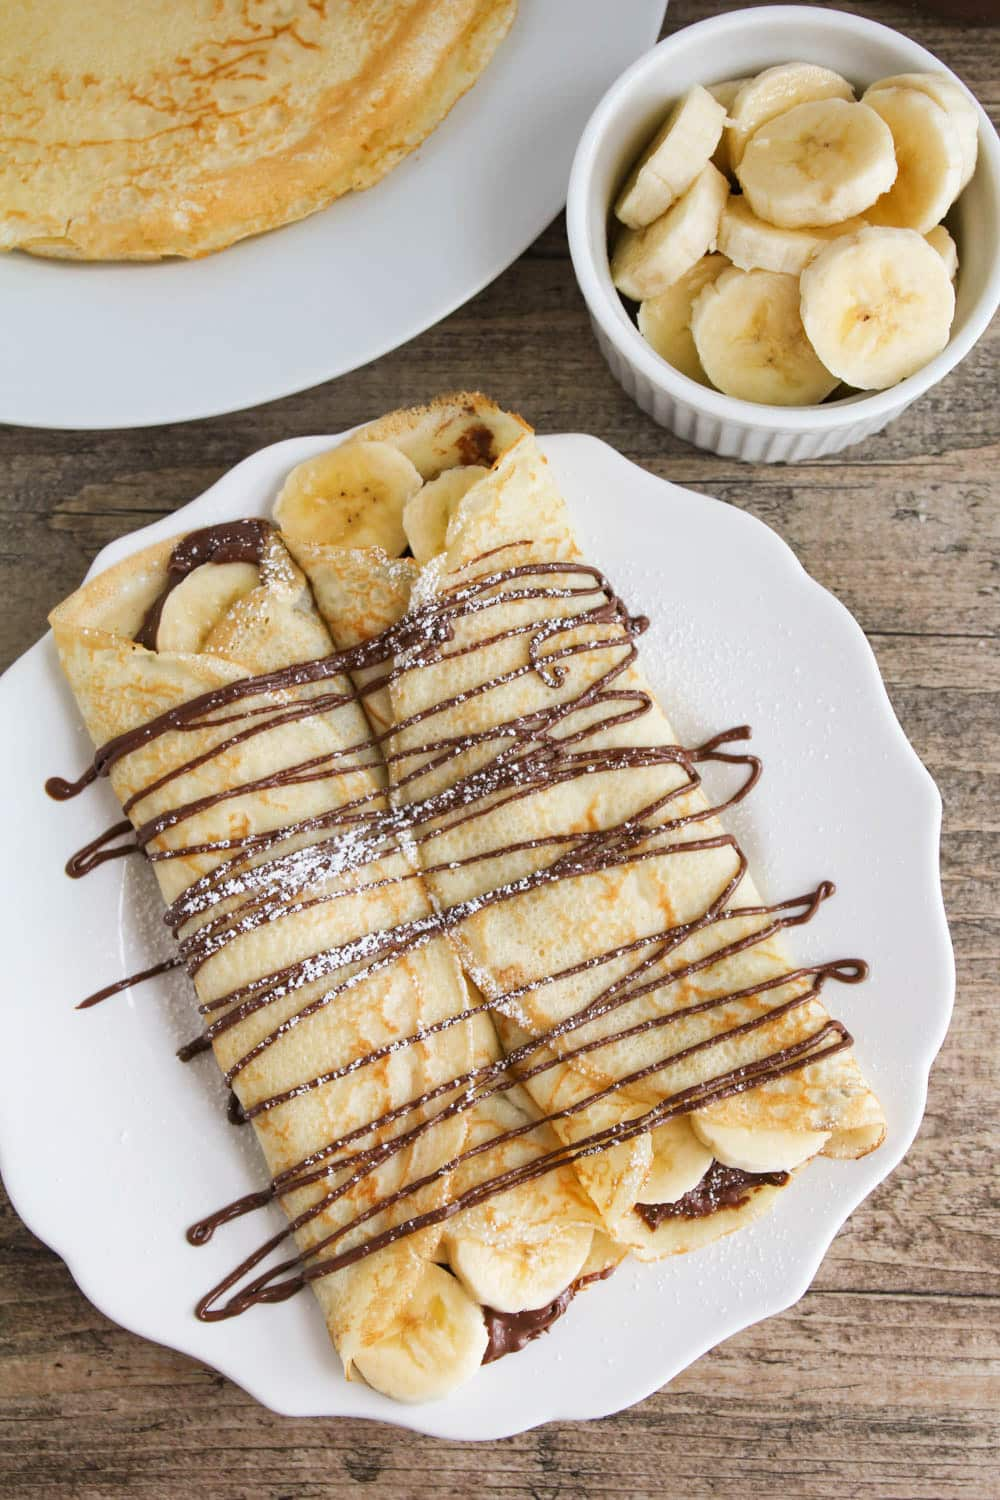 Mother's Day Brunch Meal Plan - Nutella Banana Crepes